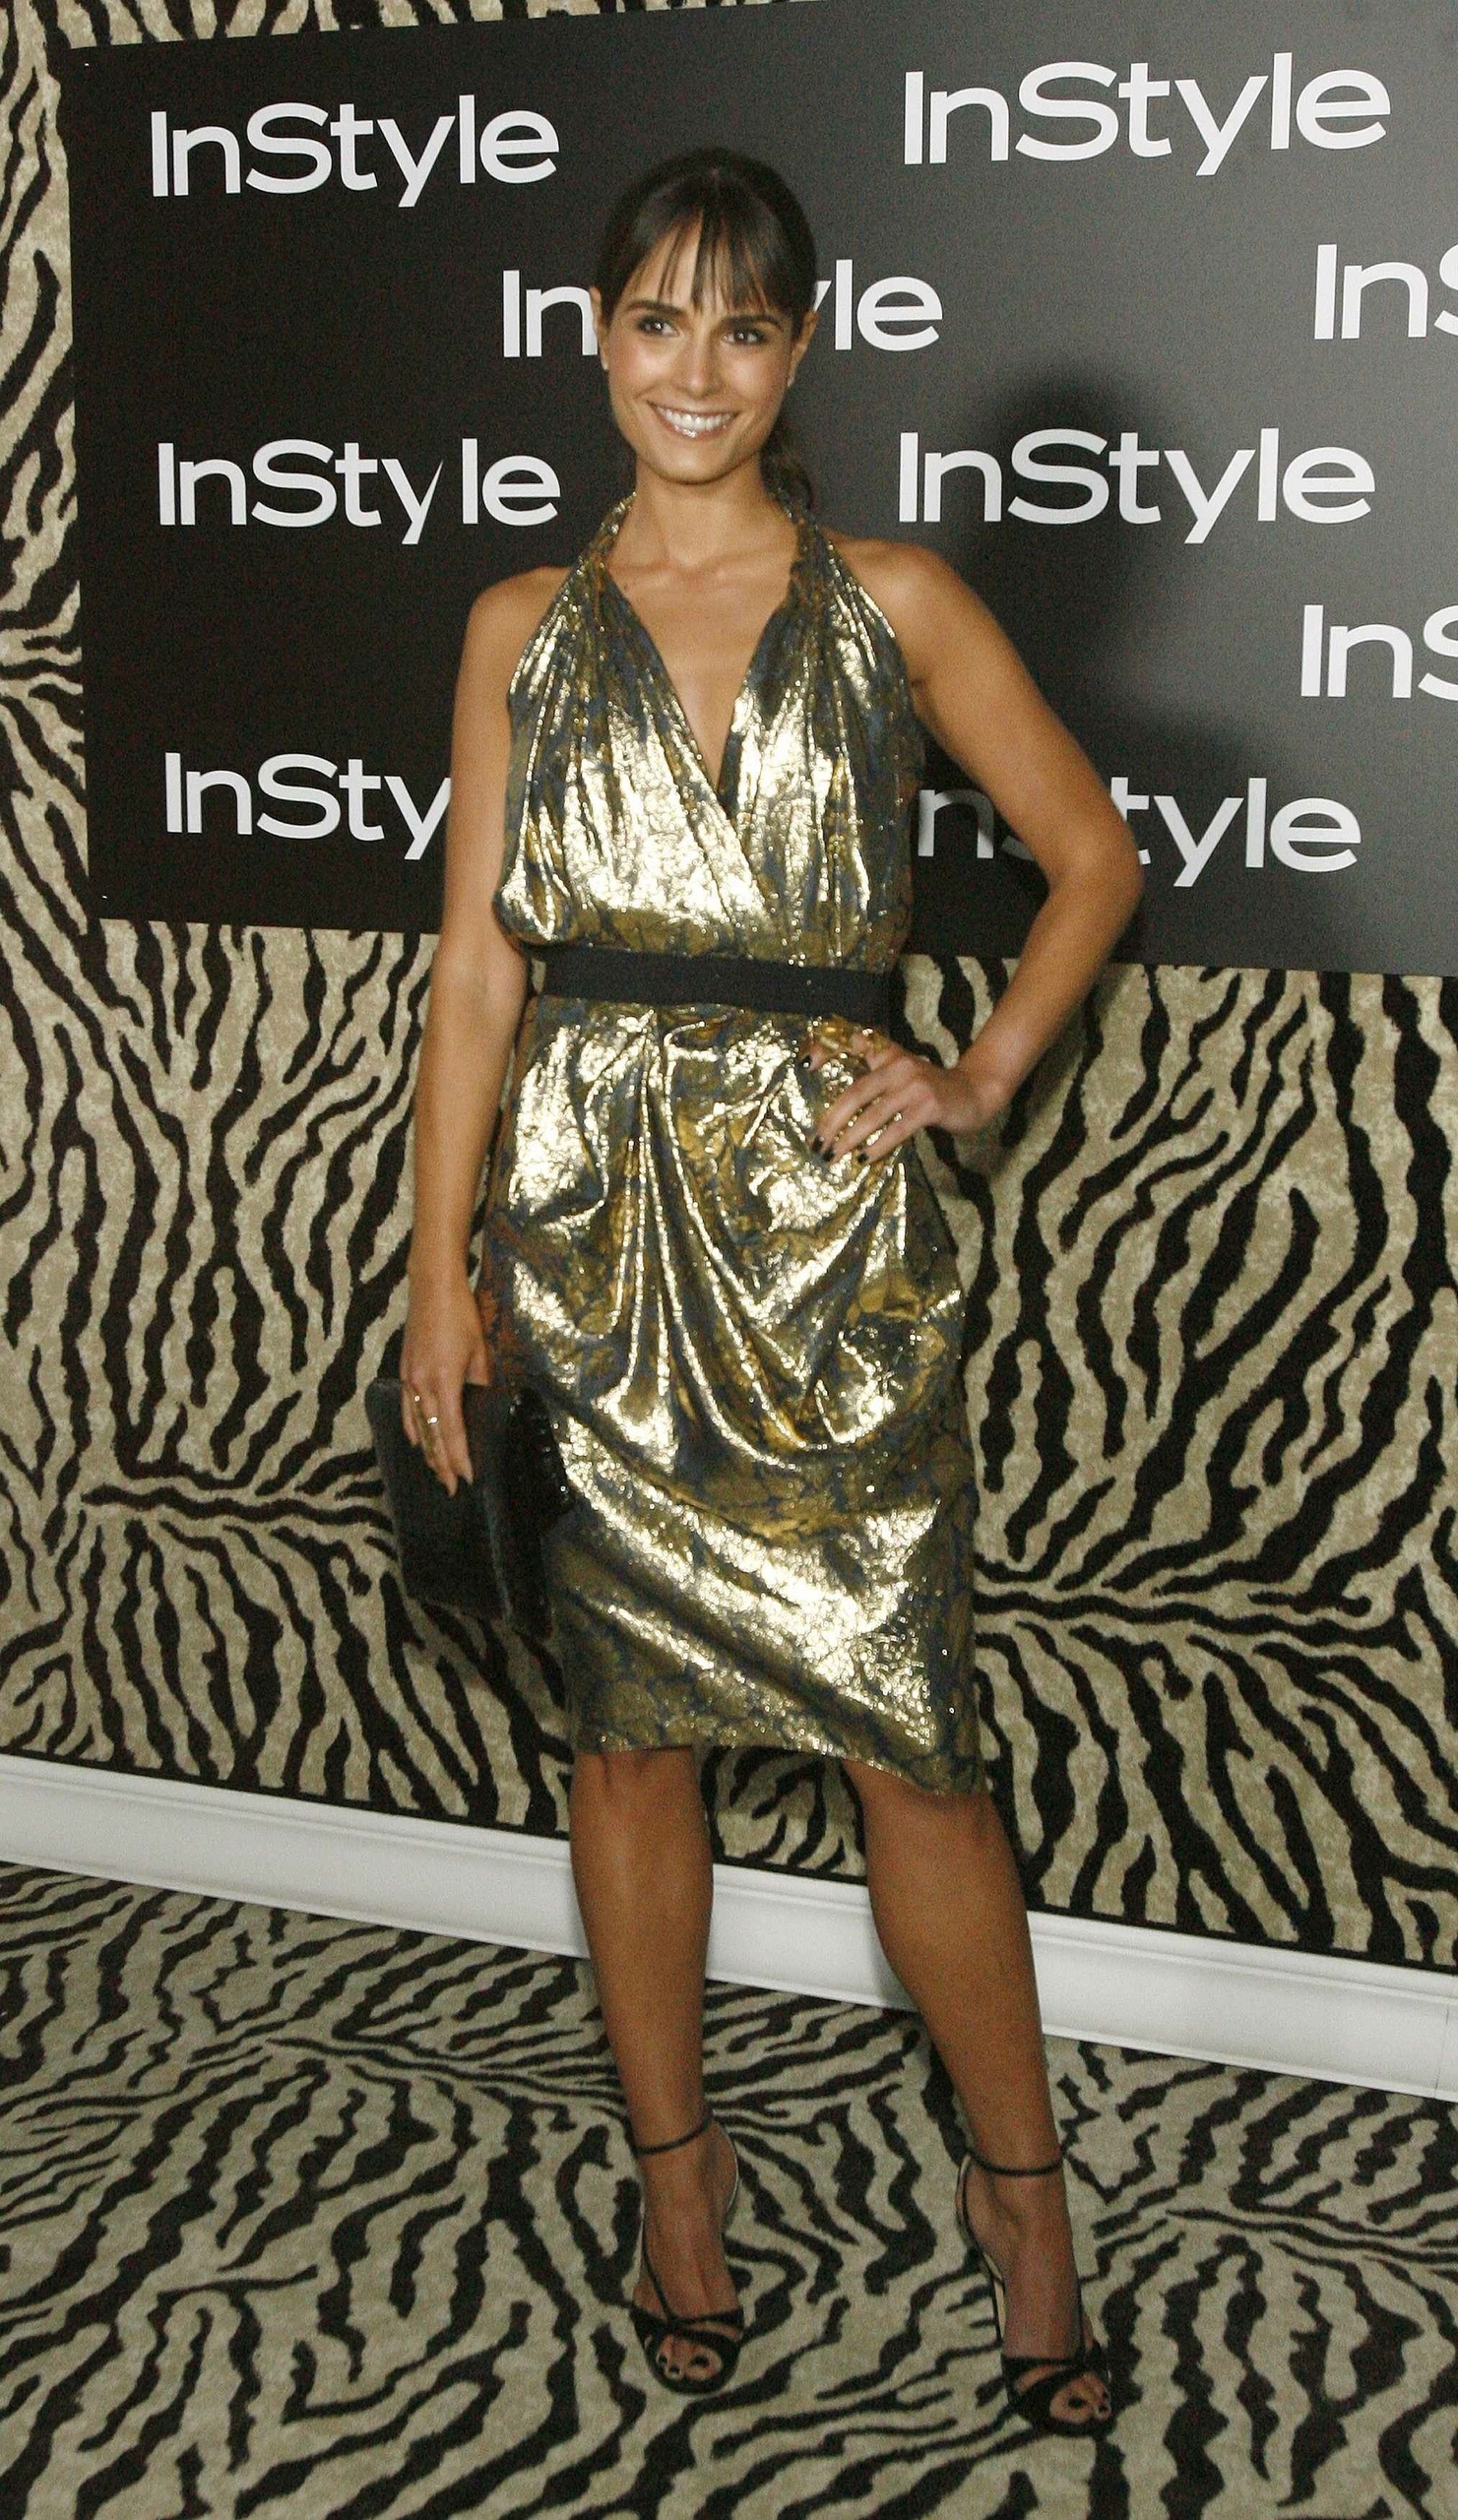 Jordana at Instyle with Tucker Paisley Clutch